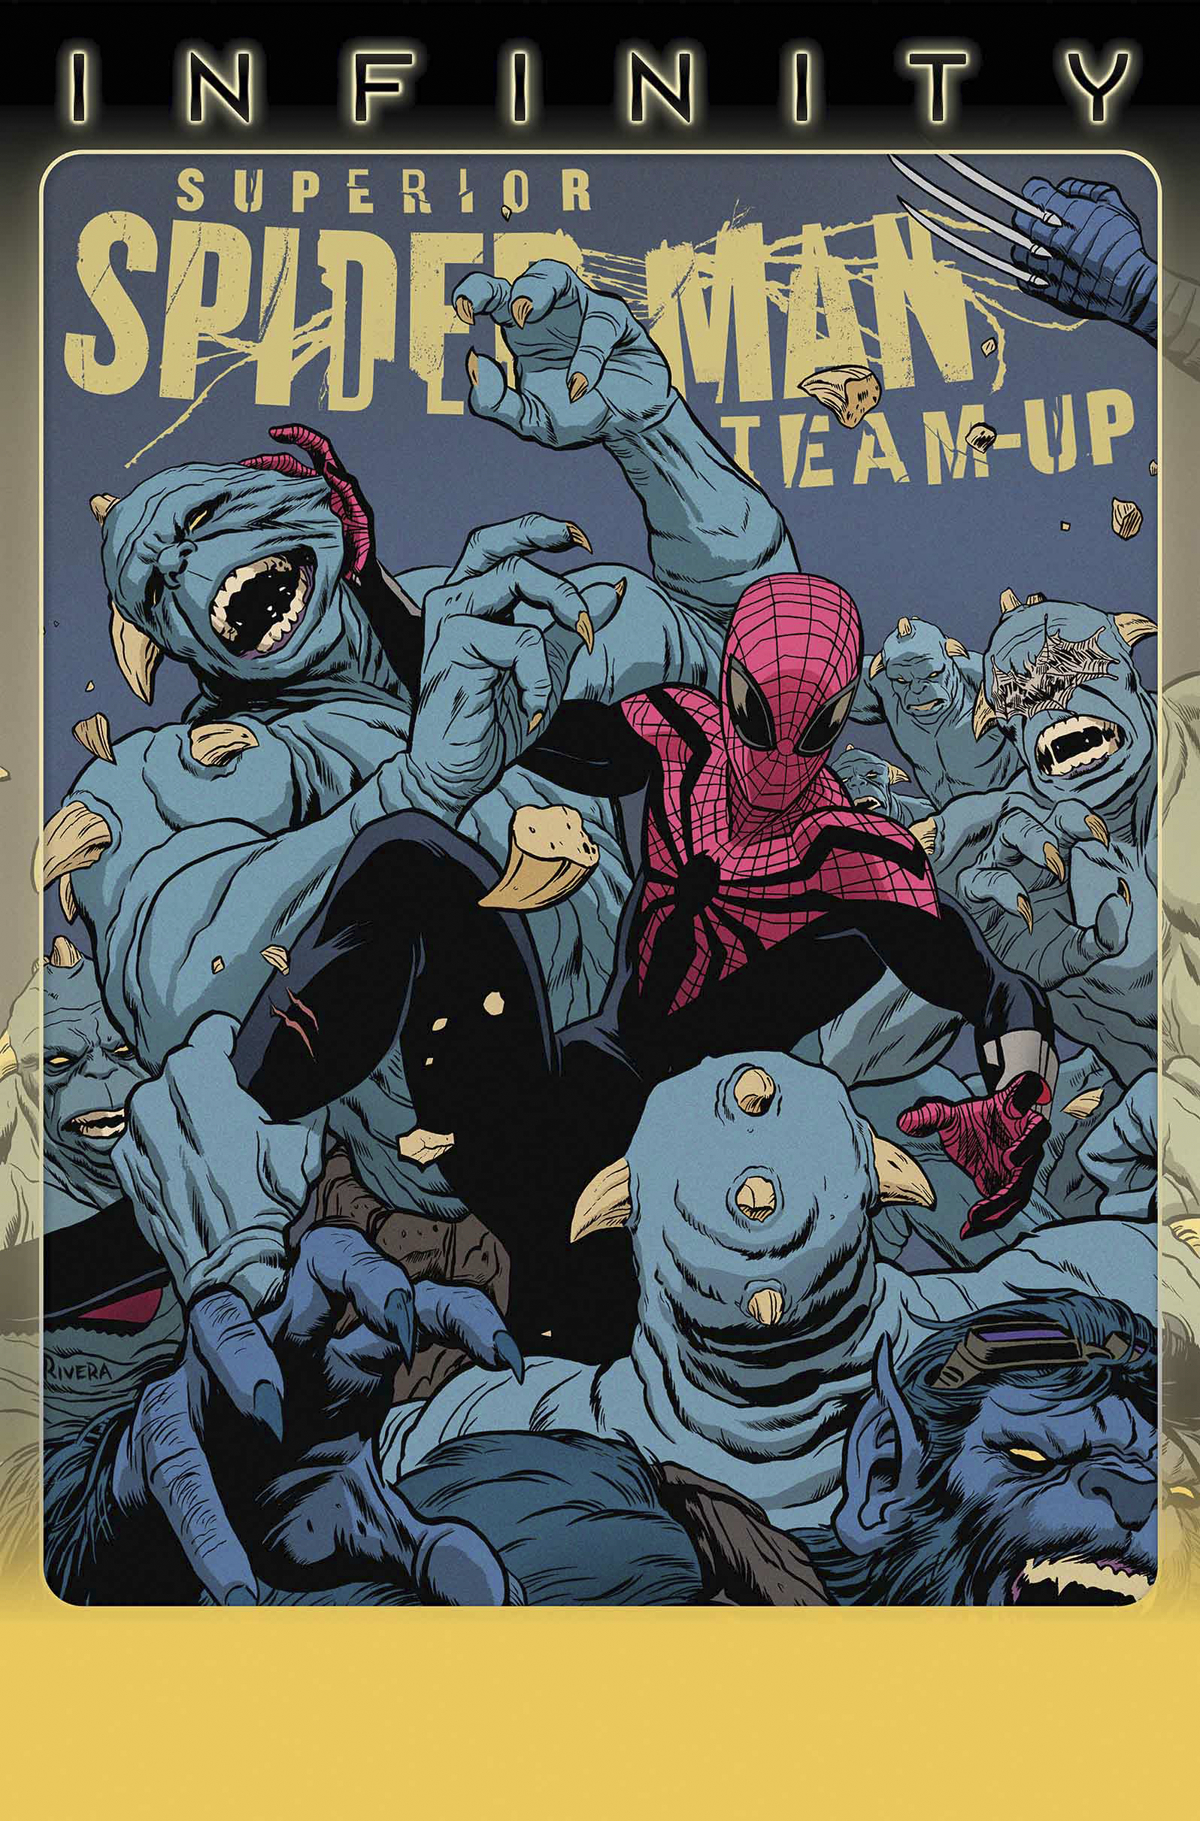 SUPERIOR SPIDER-MAN TEAM UP #4 INF